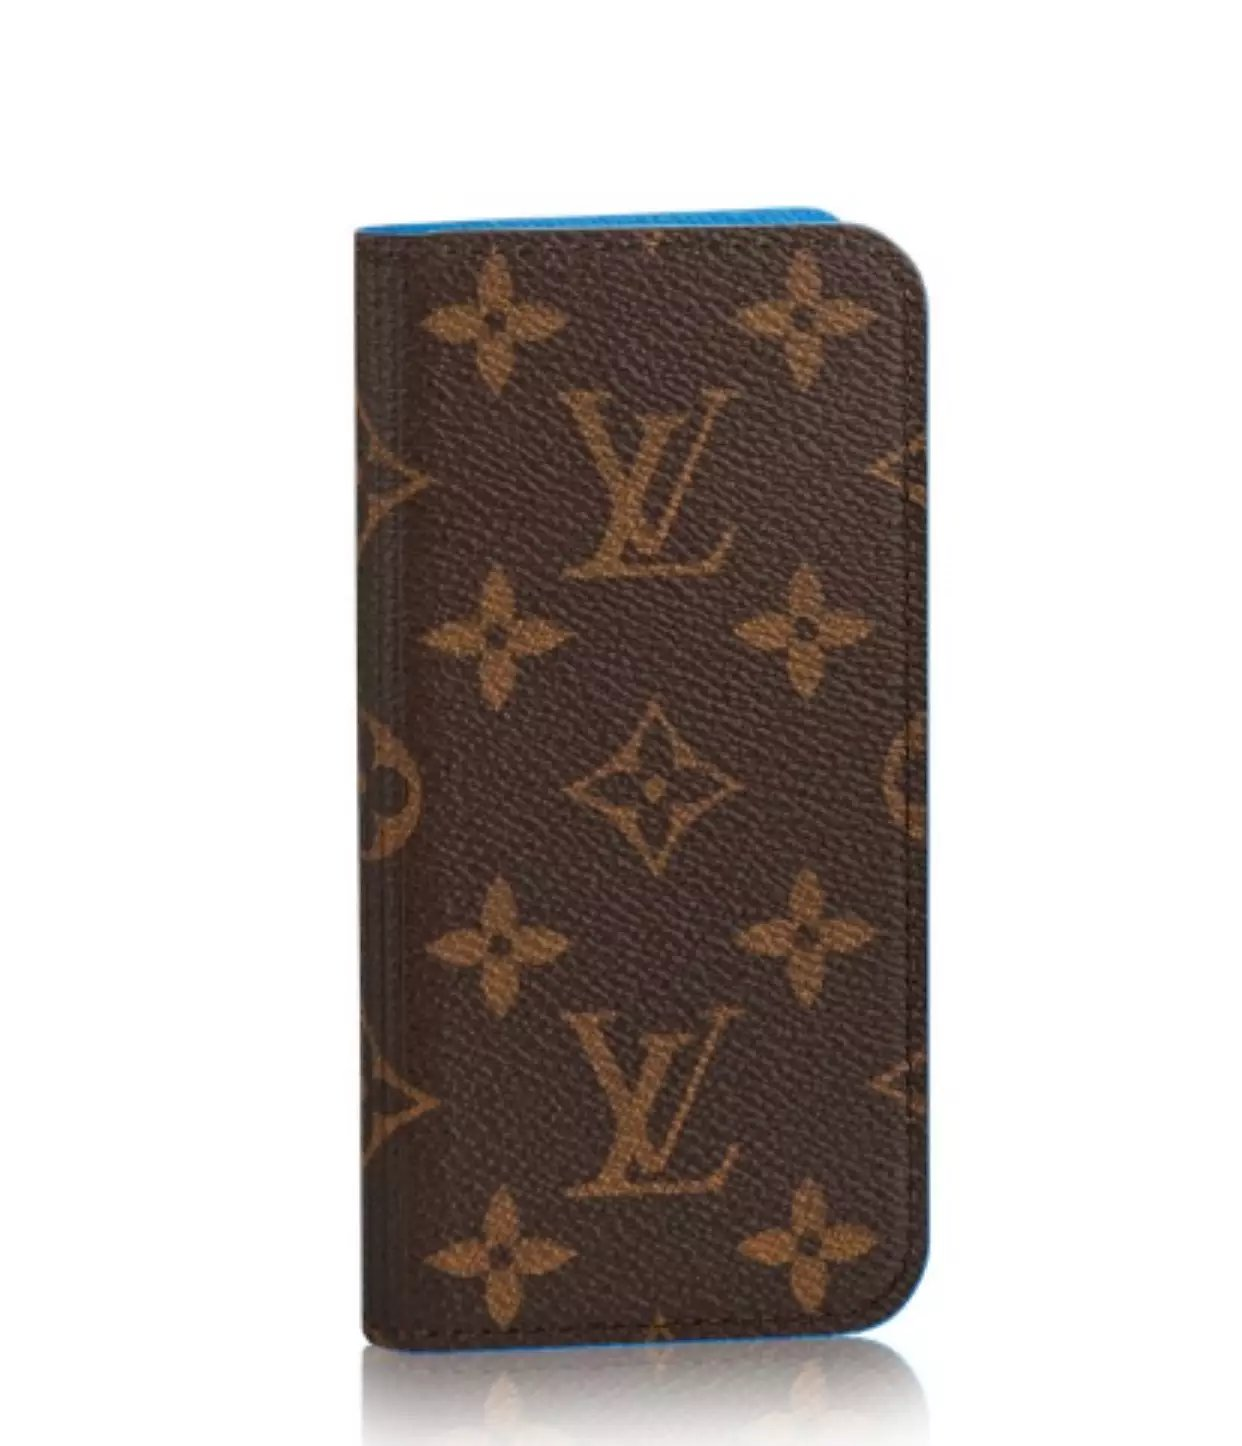 iphone hüllen bestellen iphone case selbst gestalten günstig Louis Vuitton iphone6 plus hülle handy flip ca6 elbst gestalten handyhülle s6 iphone hülle holz lederetui für iphone 6 Plus apple iphone ca6 E iphone 6 Plus